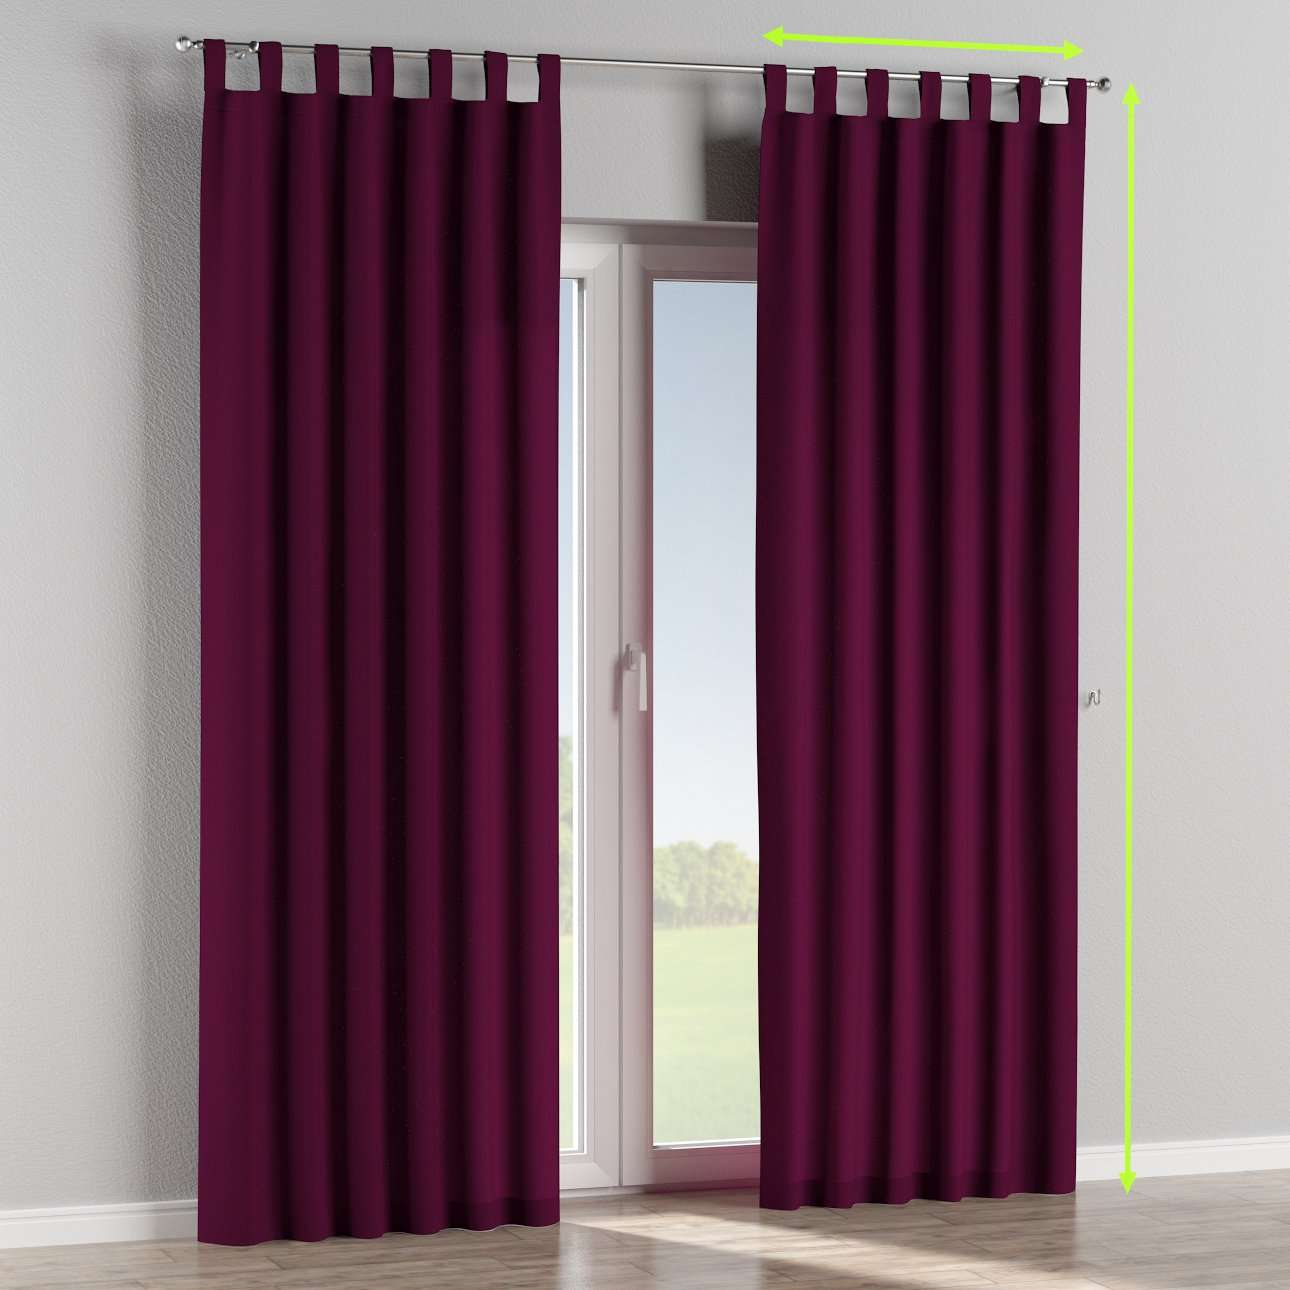 Tab top curtains in collection Chenille, fabric: 702-12